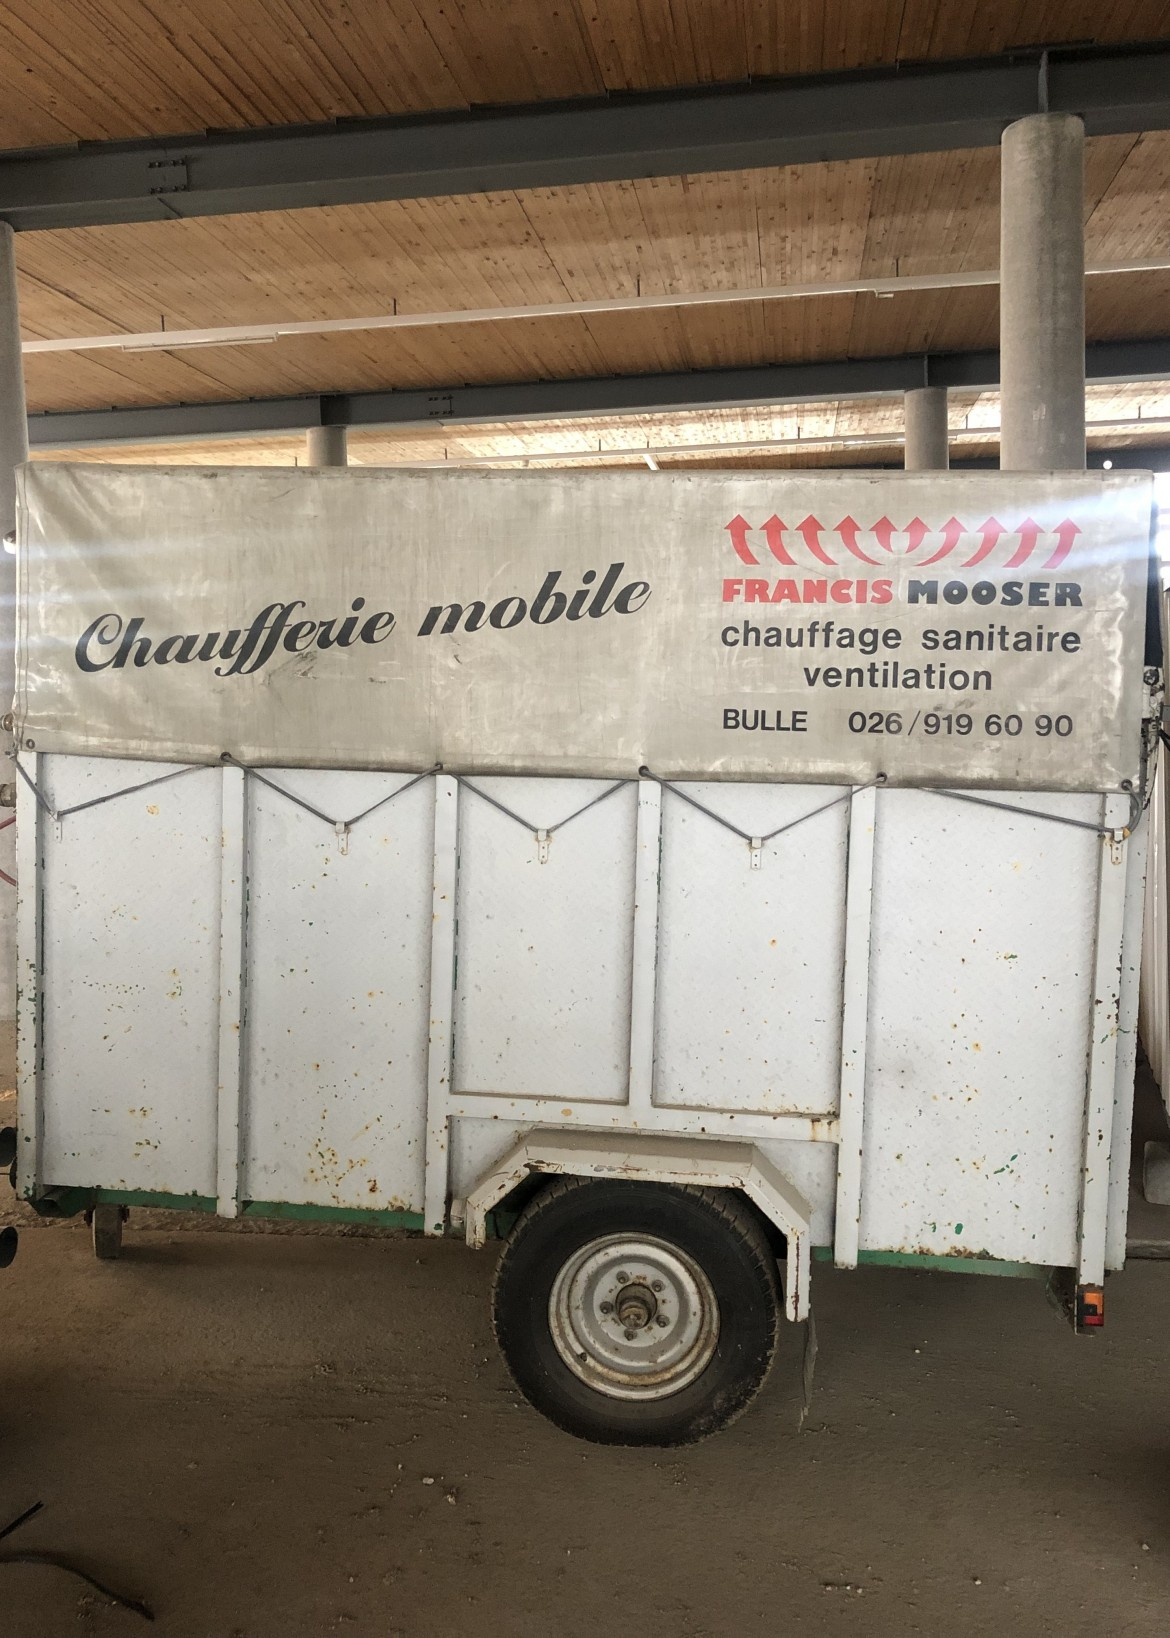 Chaufferie mobile